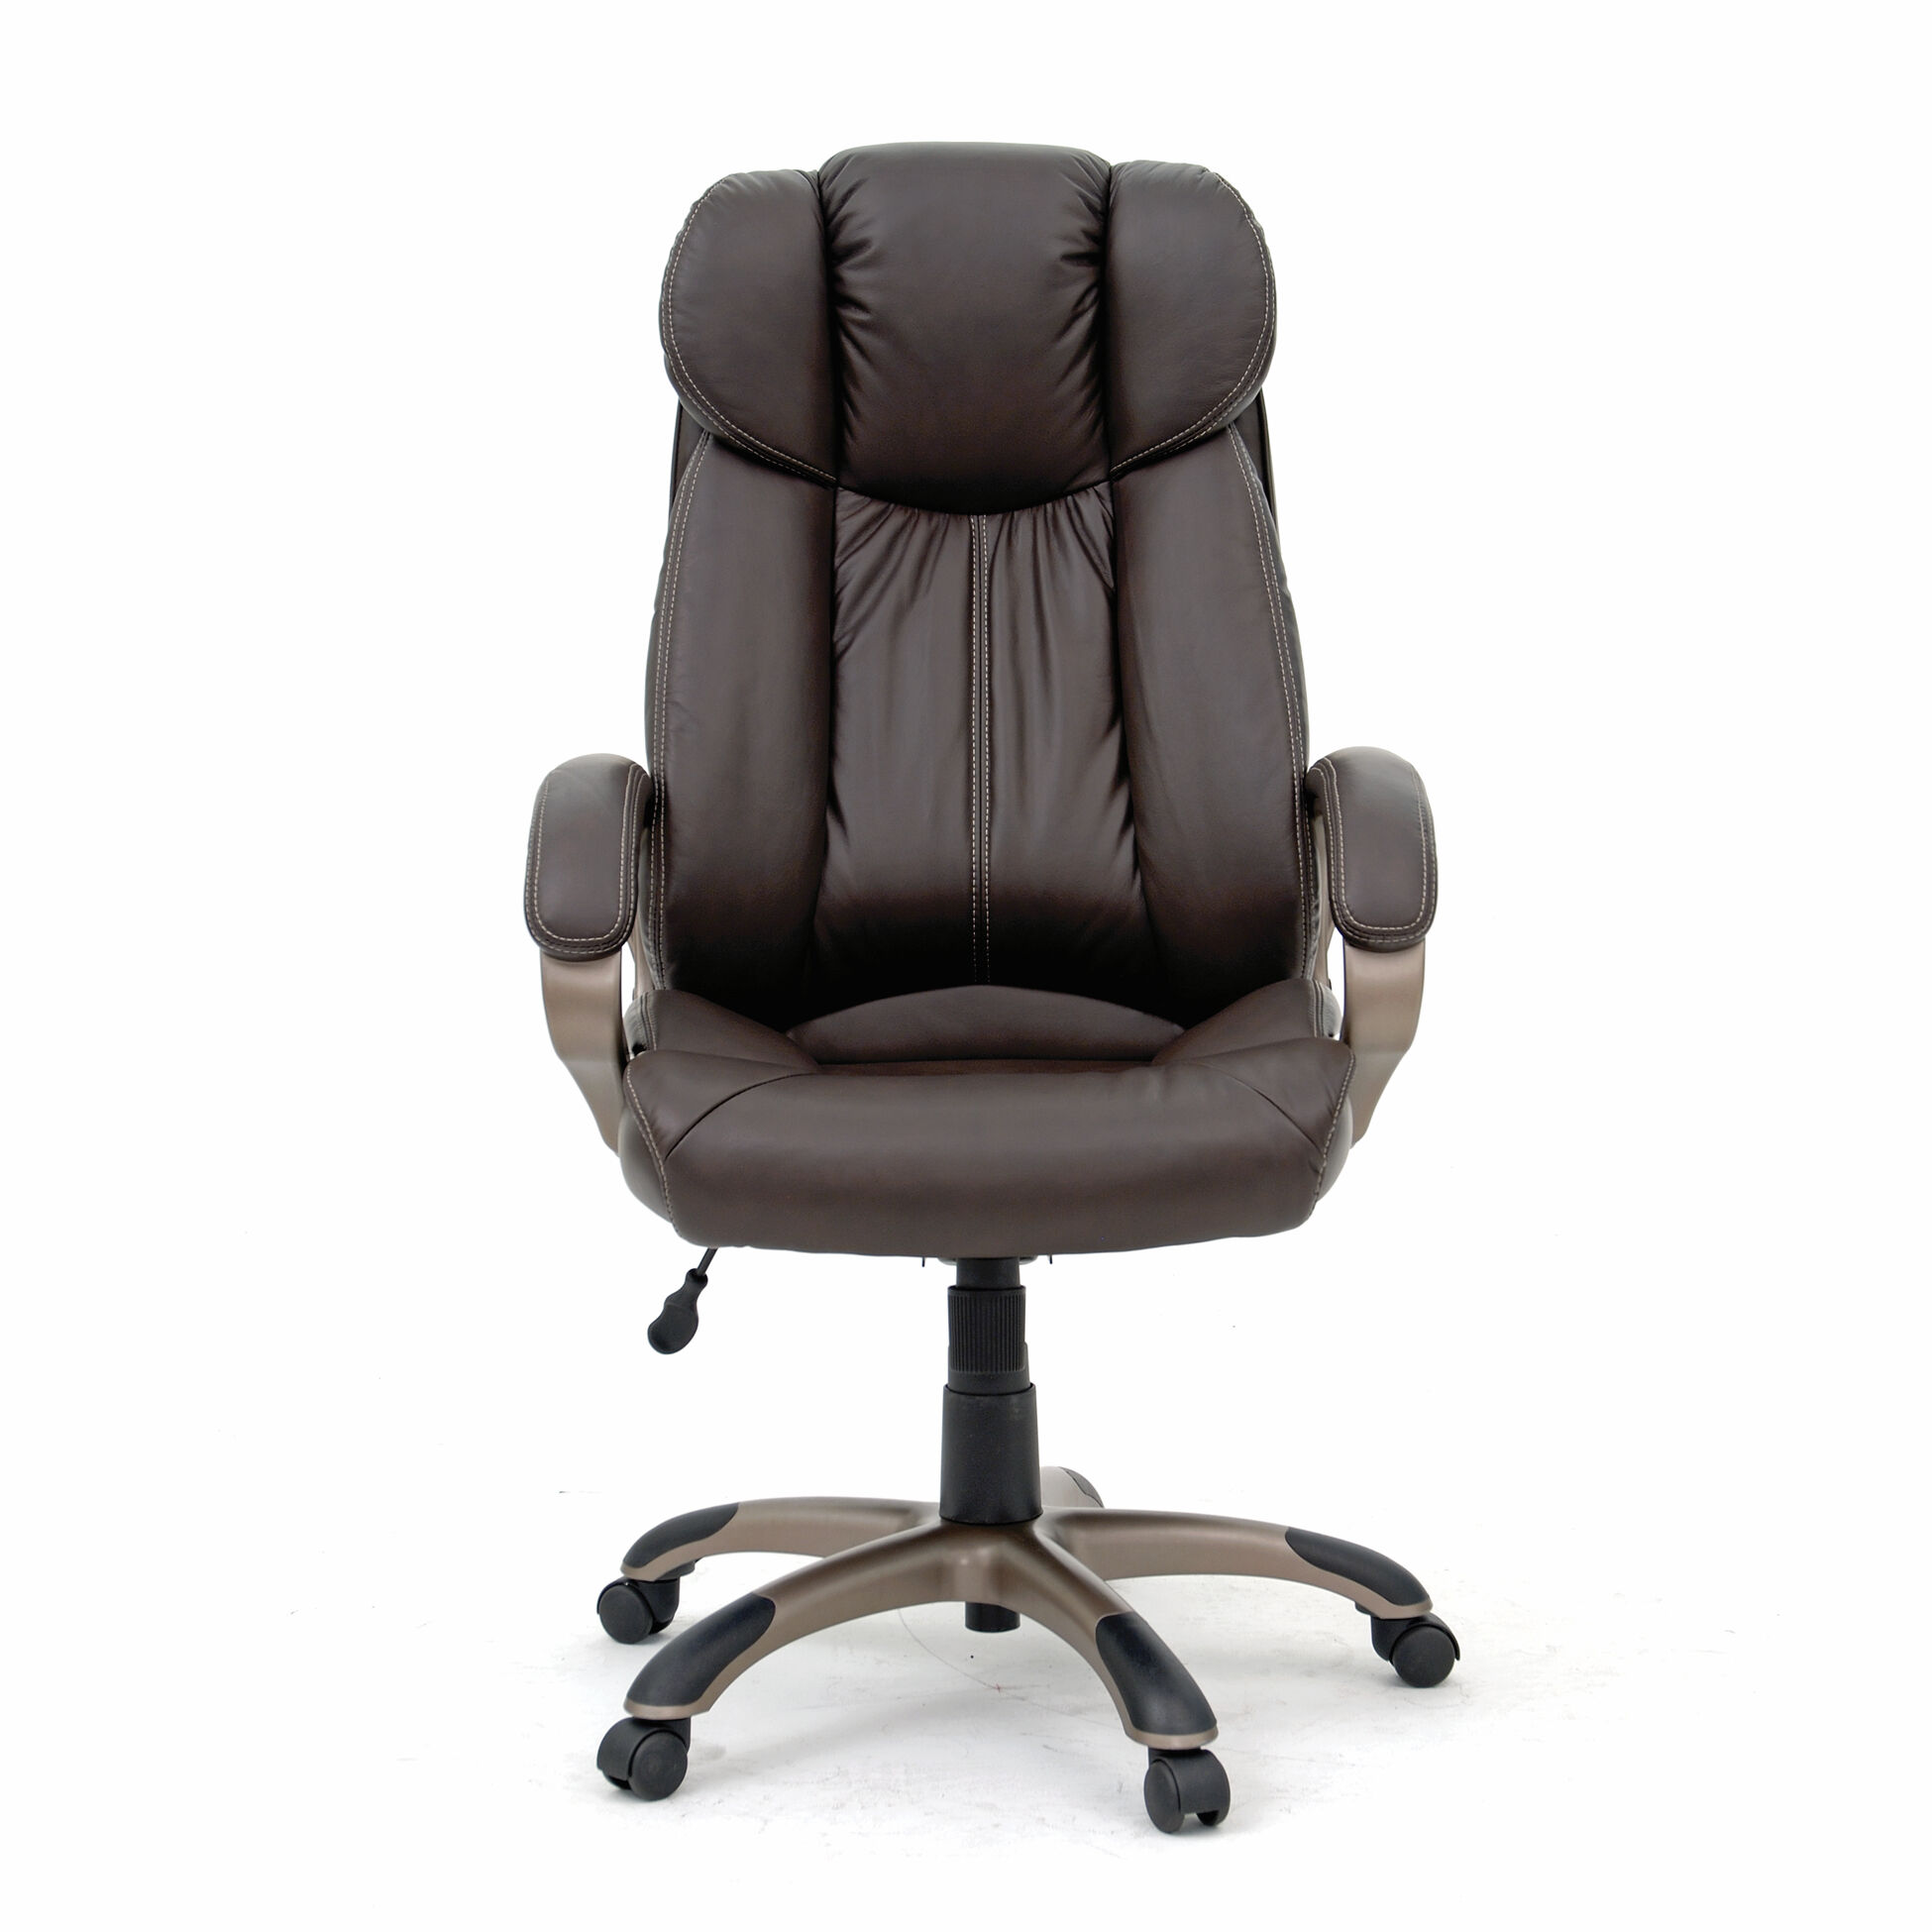 leather executive office chair discount church chairs contoured swivel tilt in brown   mathis brothers furniture